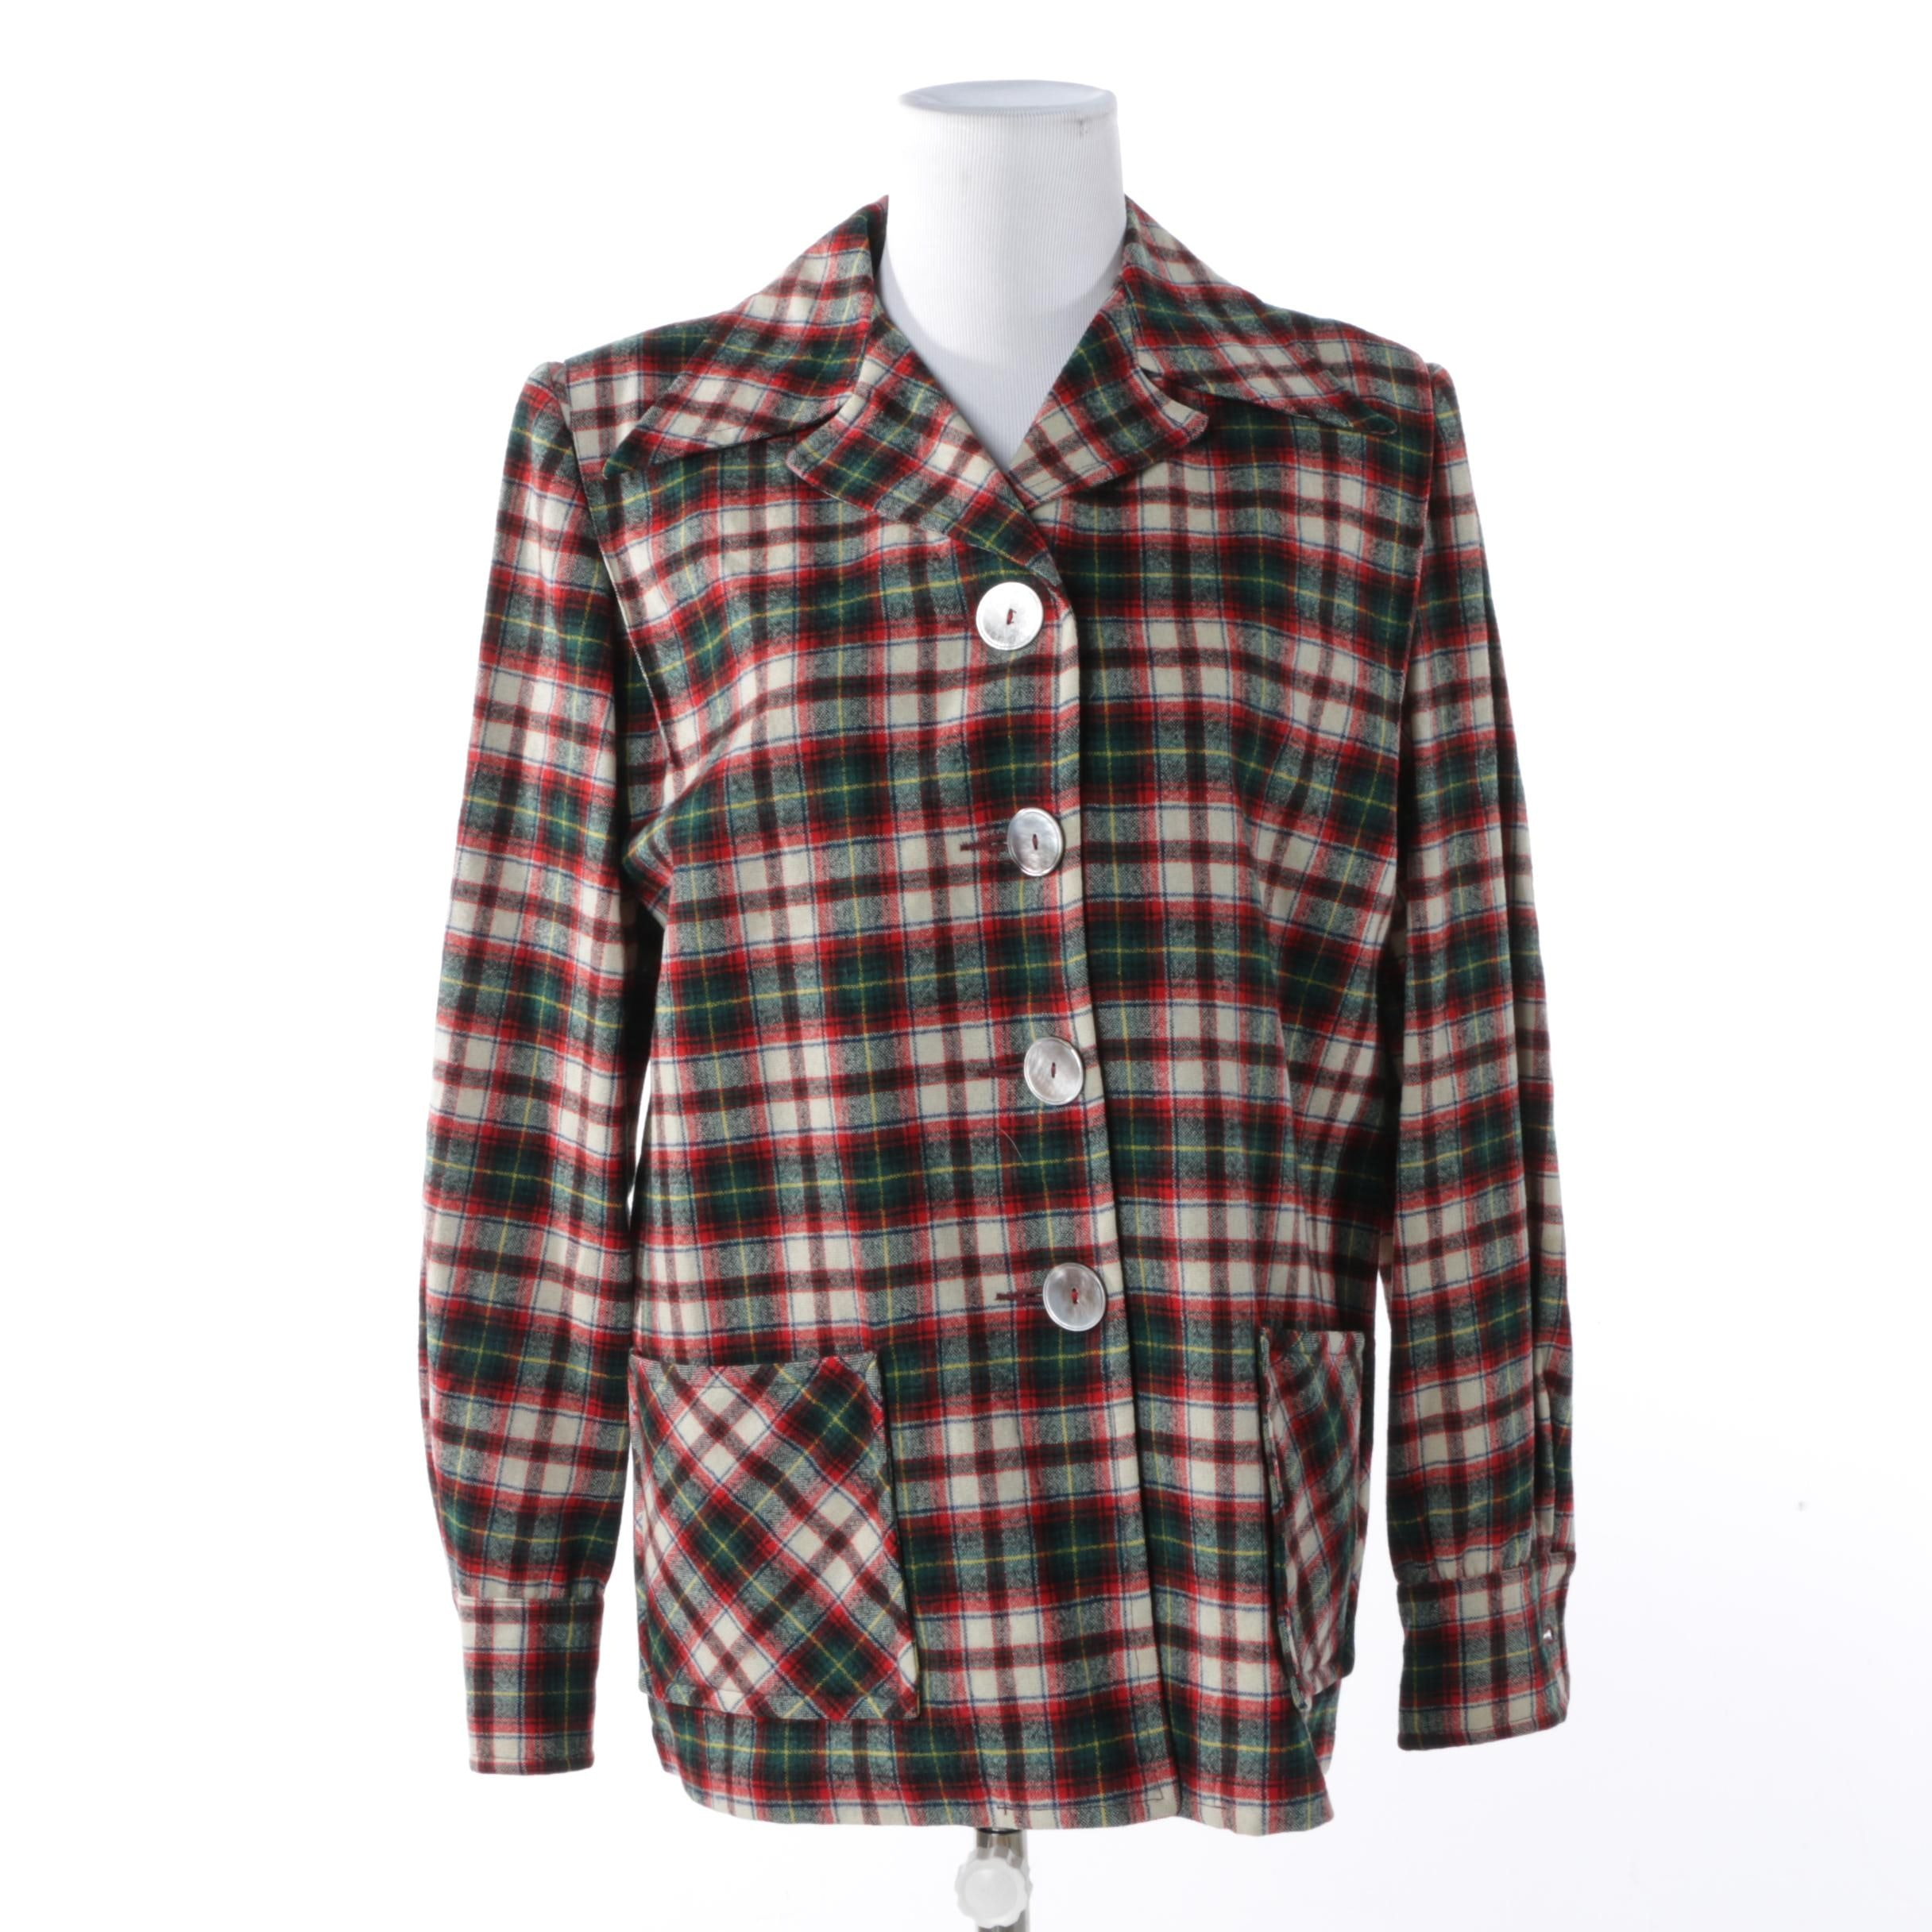 Women's Pendleton Plaid Wool Shirt Jacket